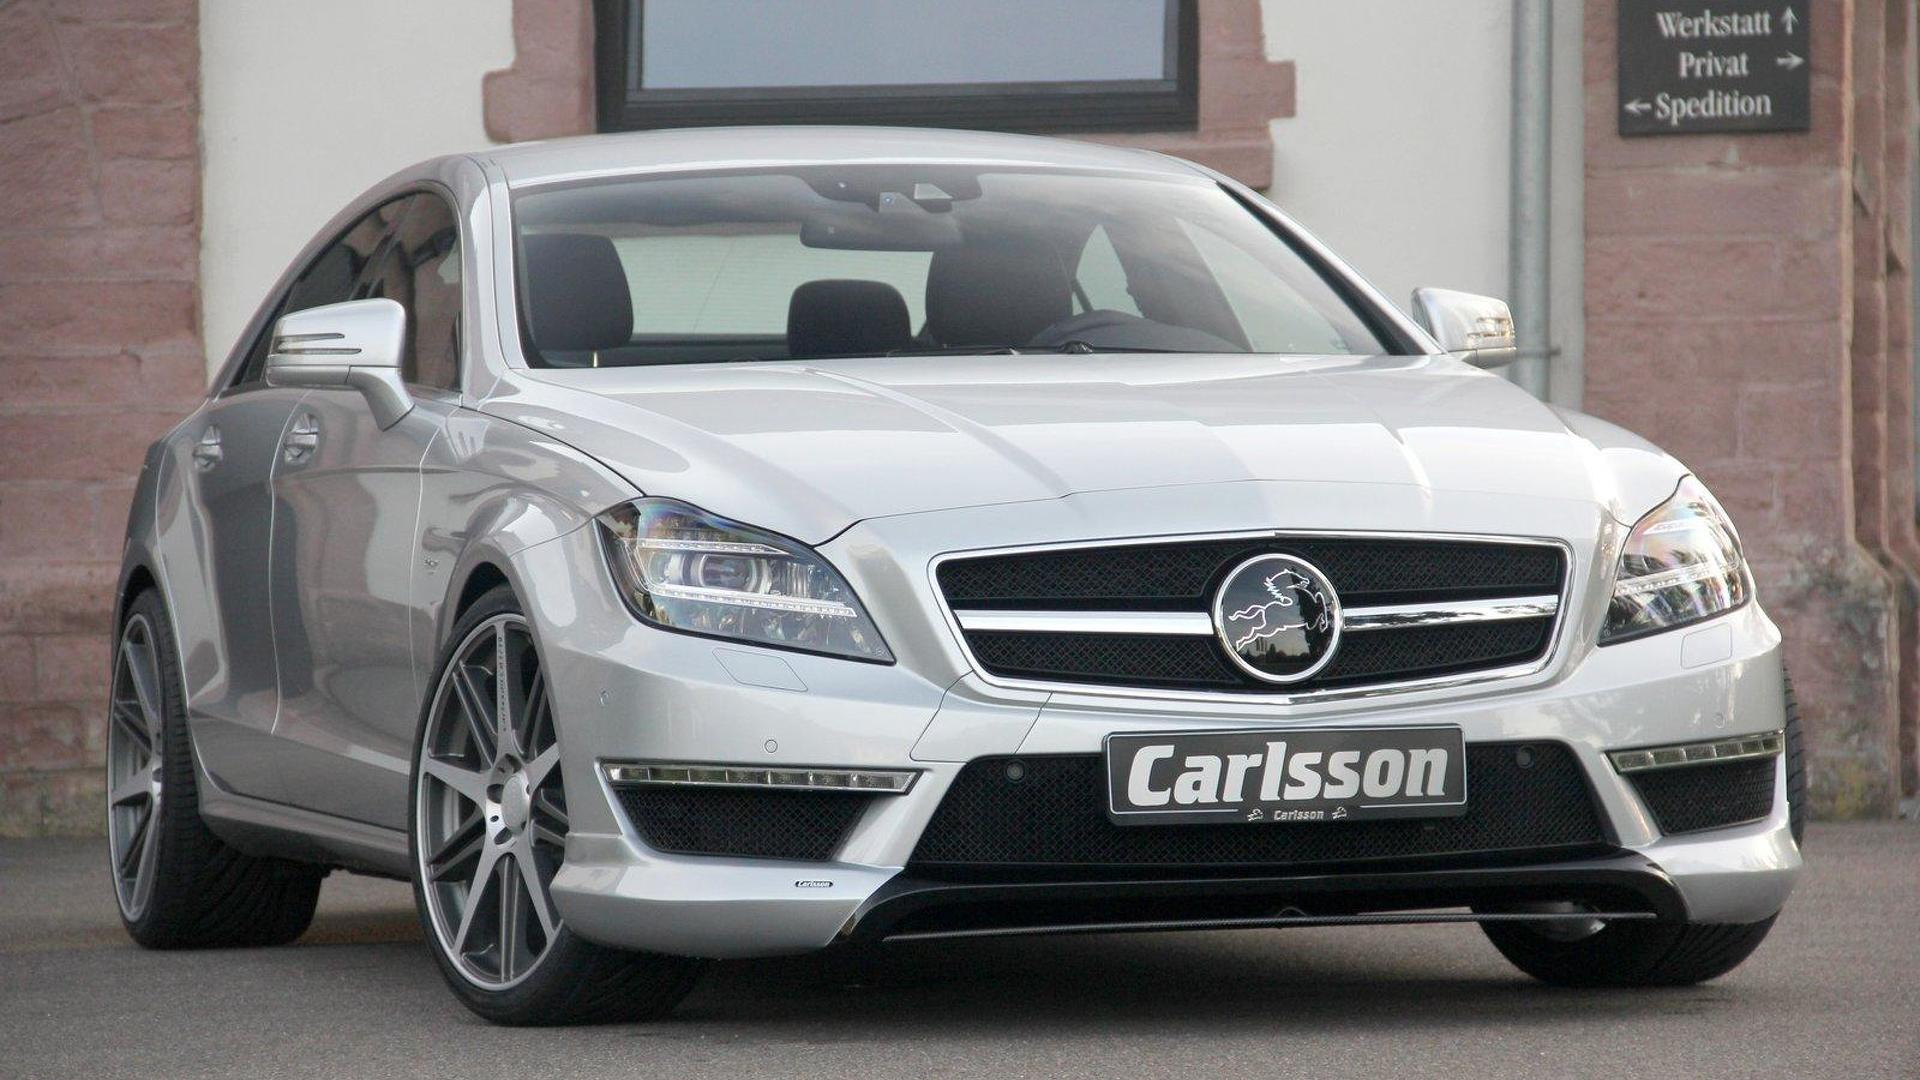 Carlsson bought by Chinese